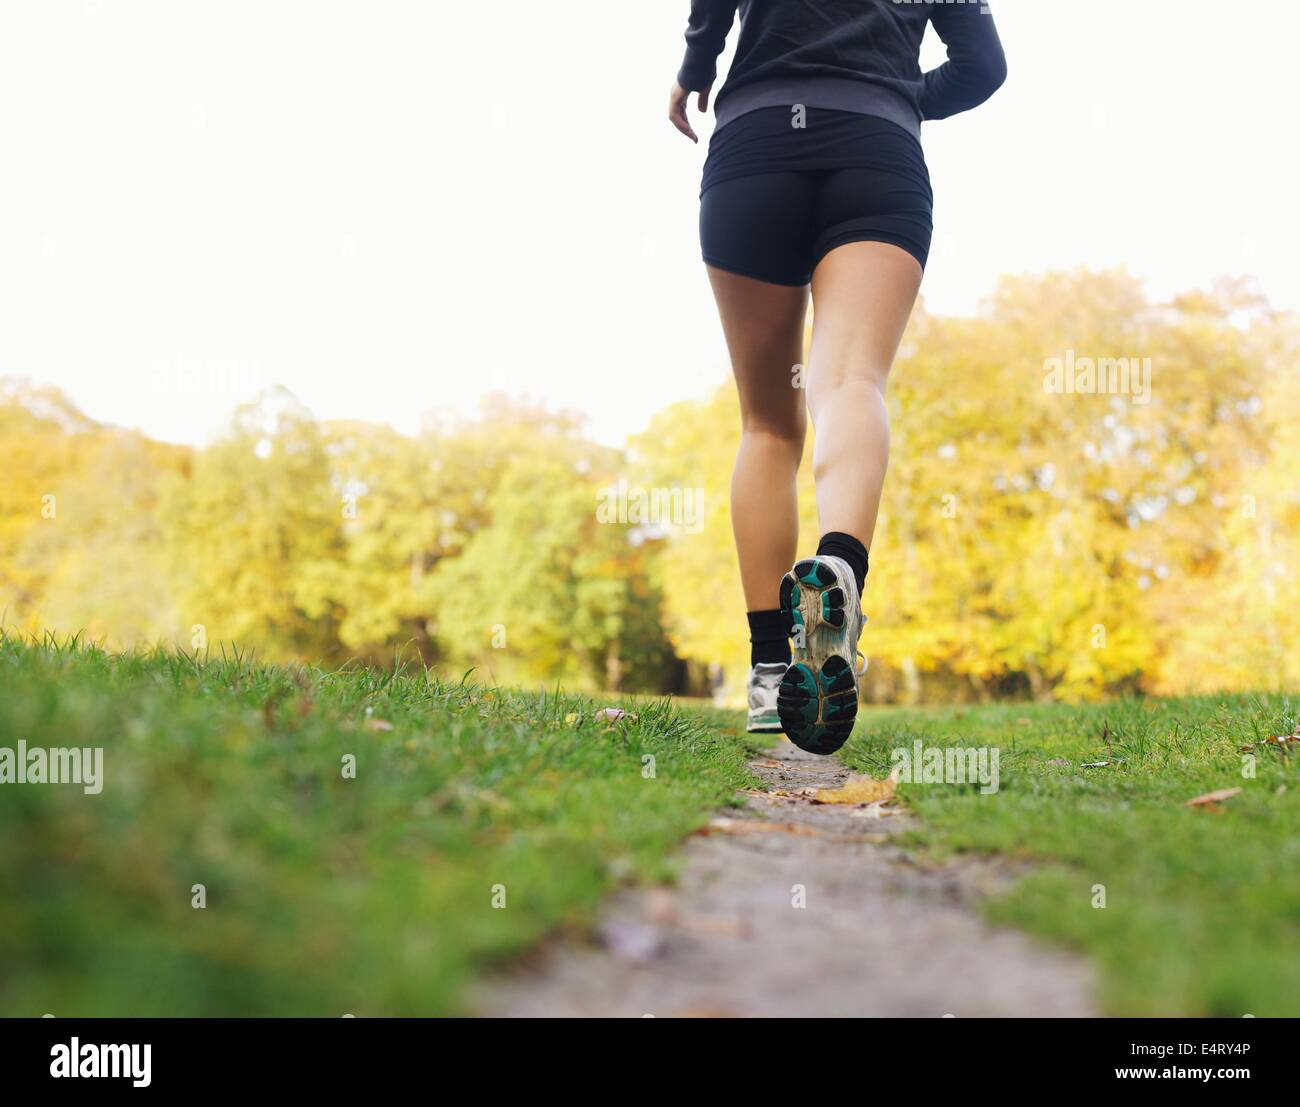 Rear view of woman athlete jogging in park. Female fitness model running outdoors - Stock Image